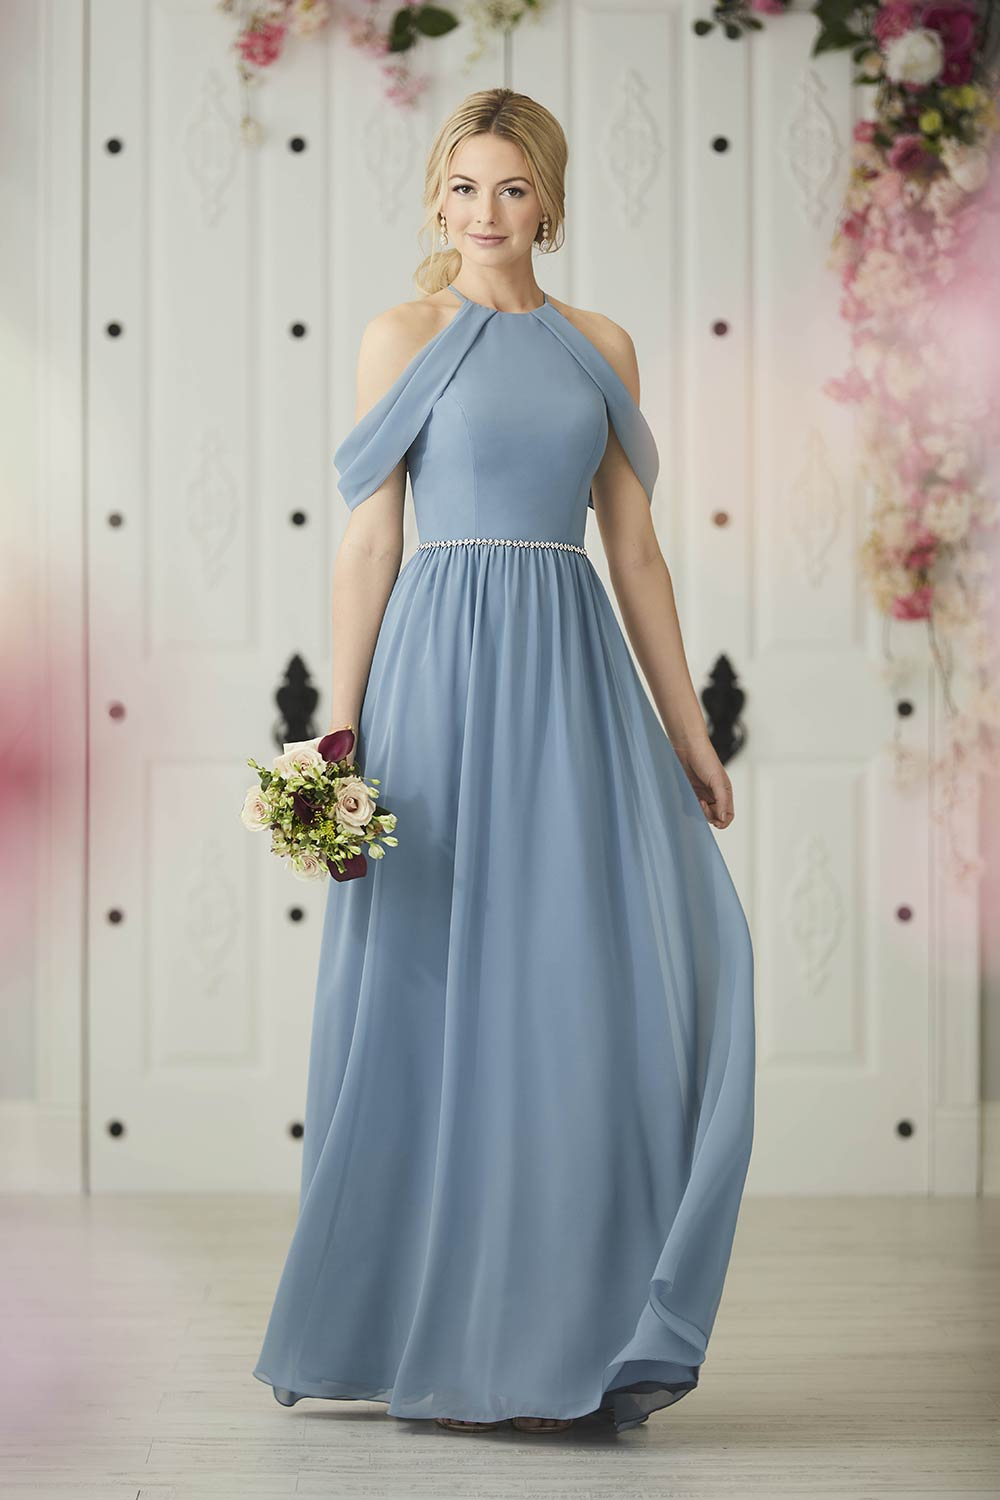 bridesmaid-dresses-jacquelin-bridals-canada-27302